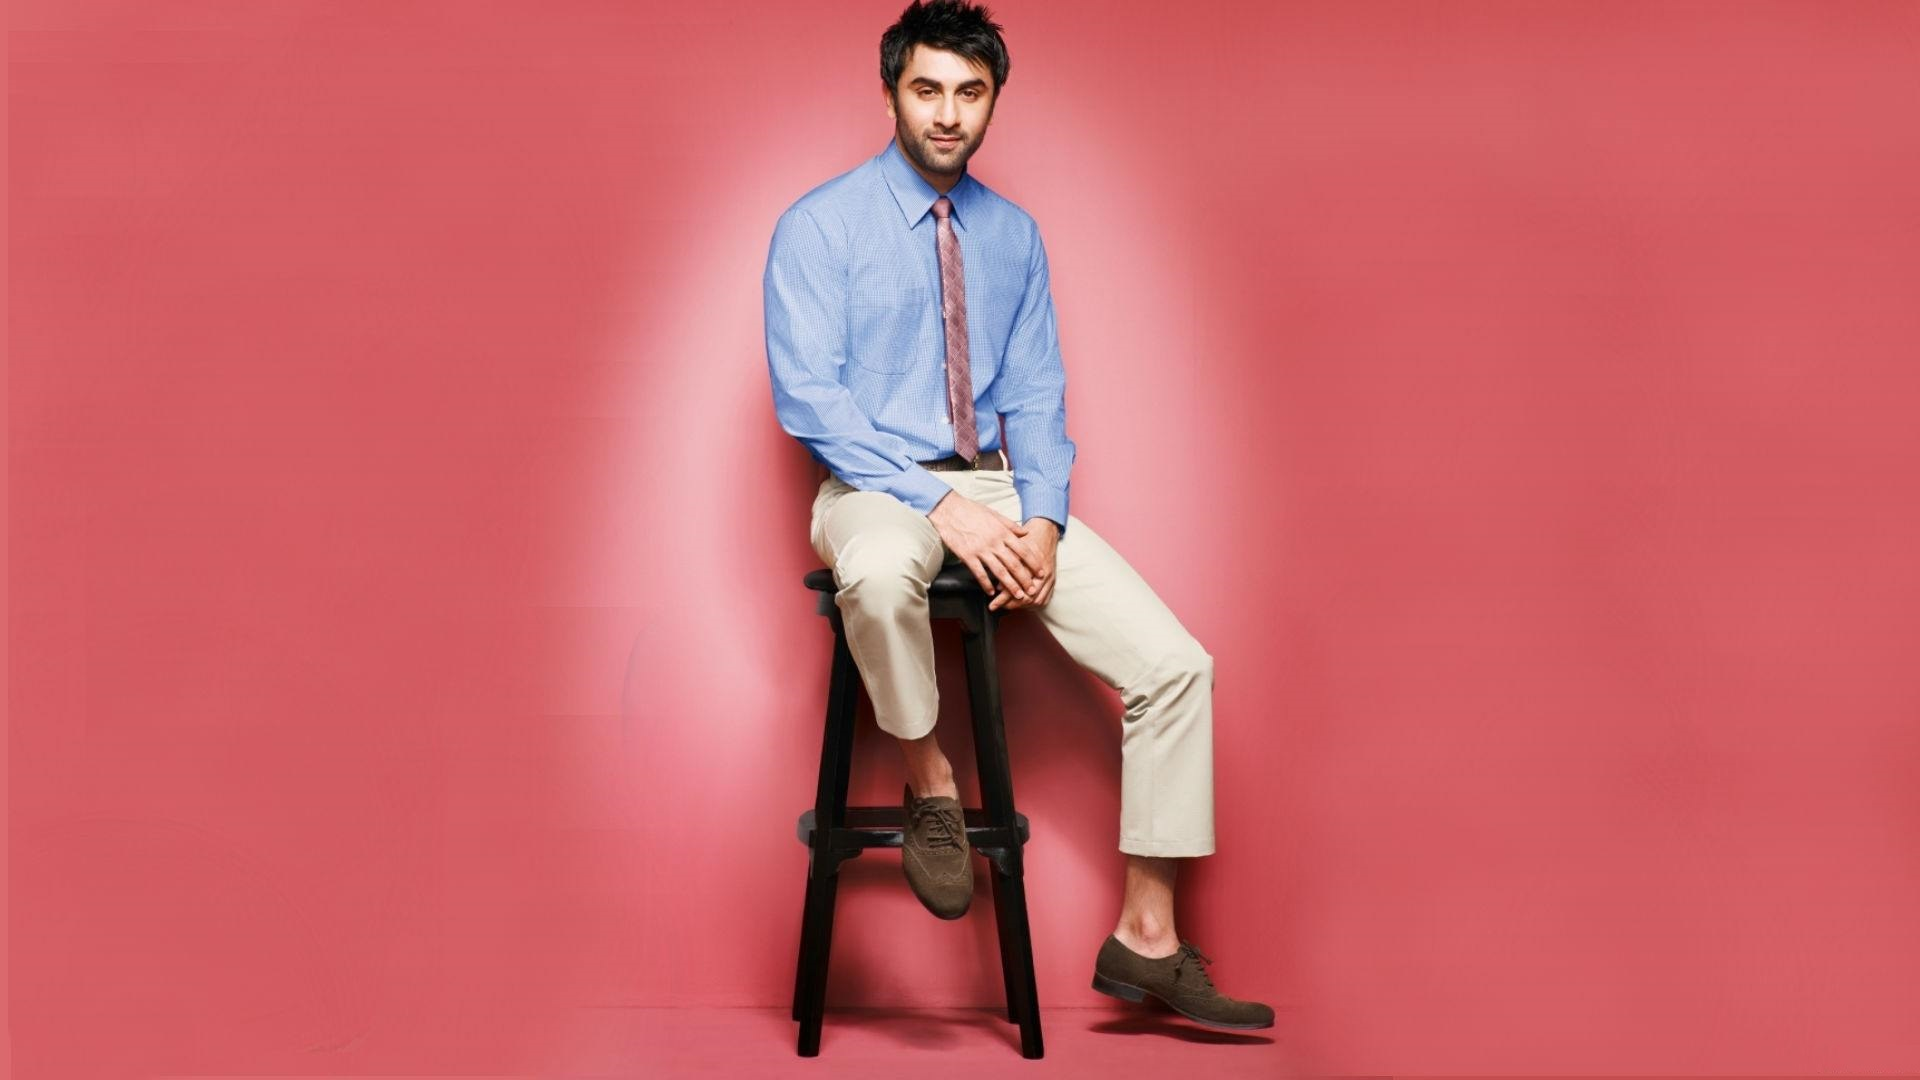 Photos of Ranbir Kapoor